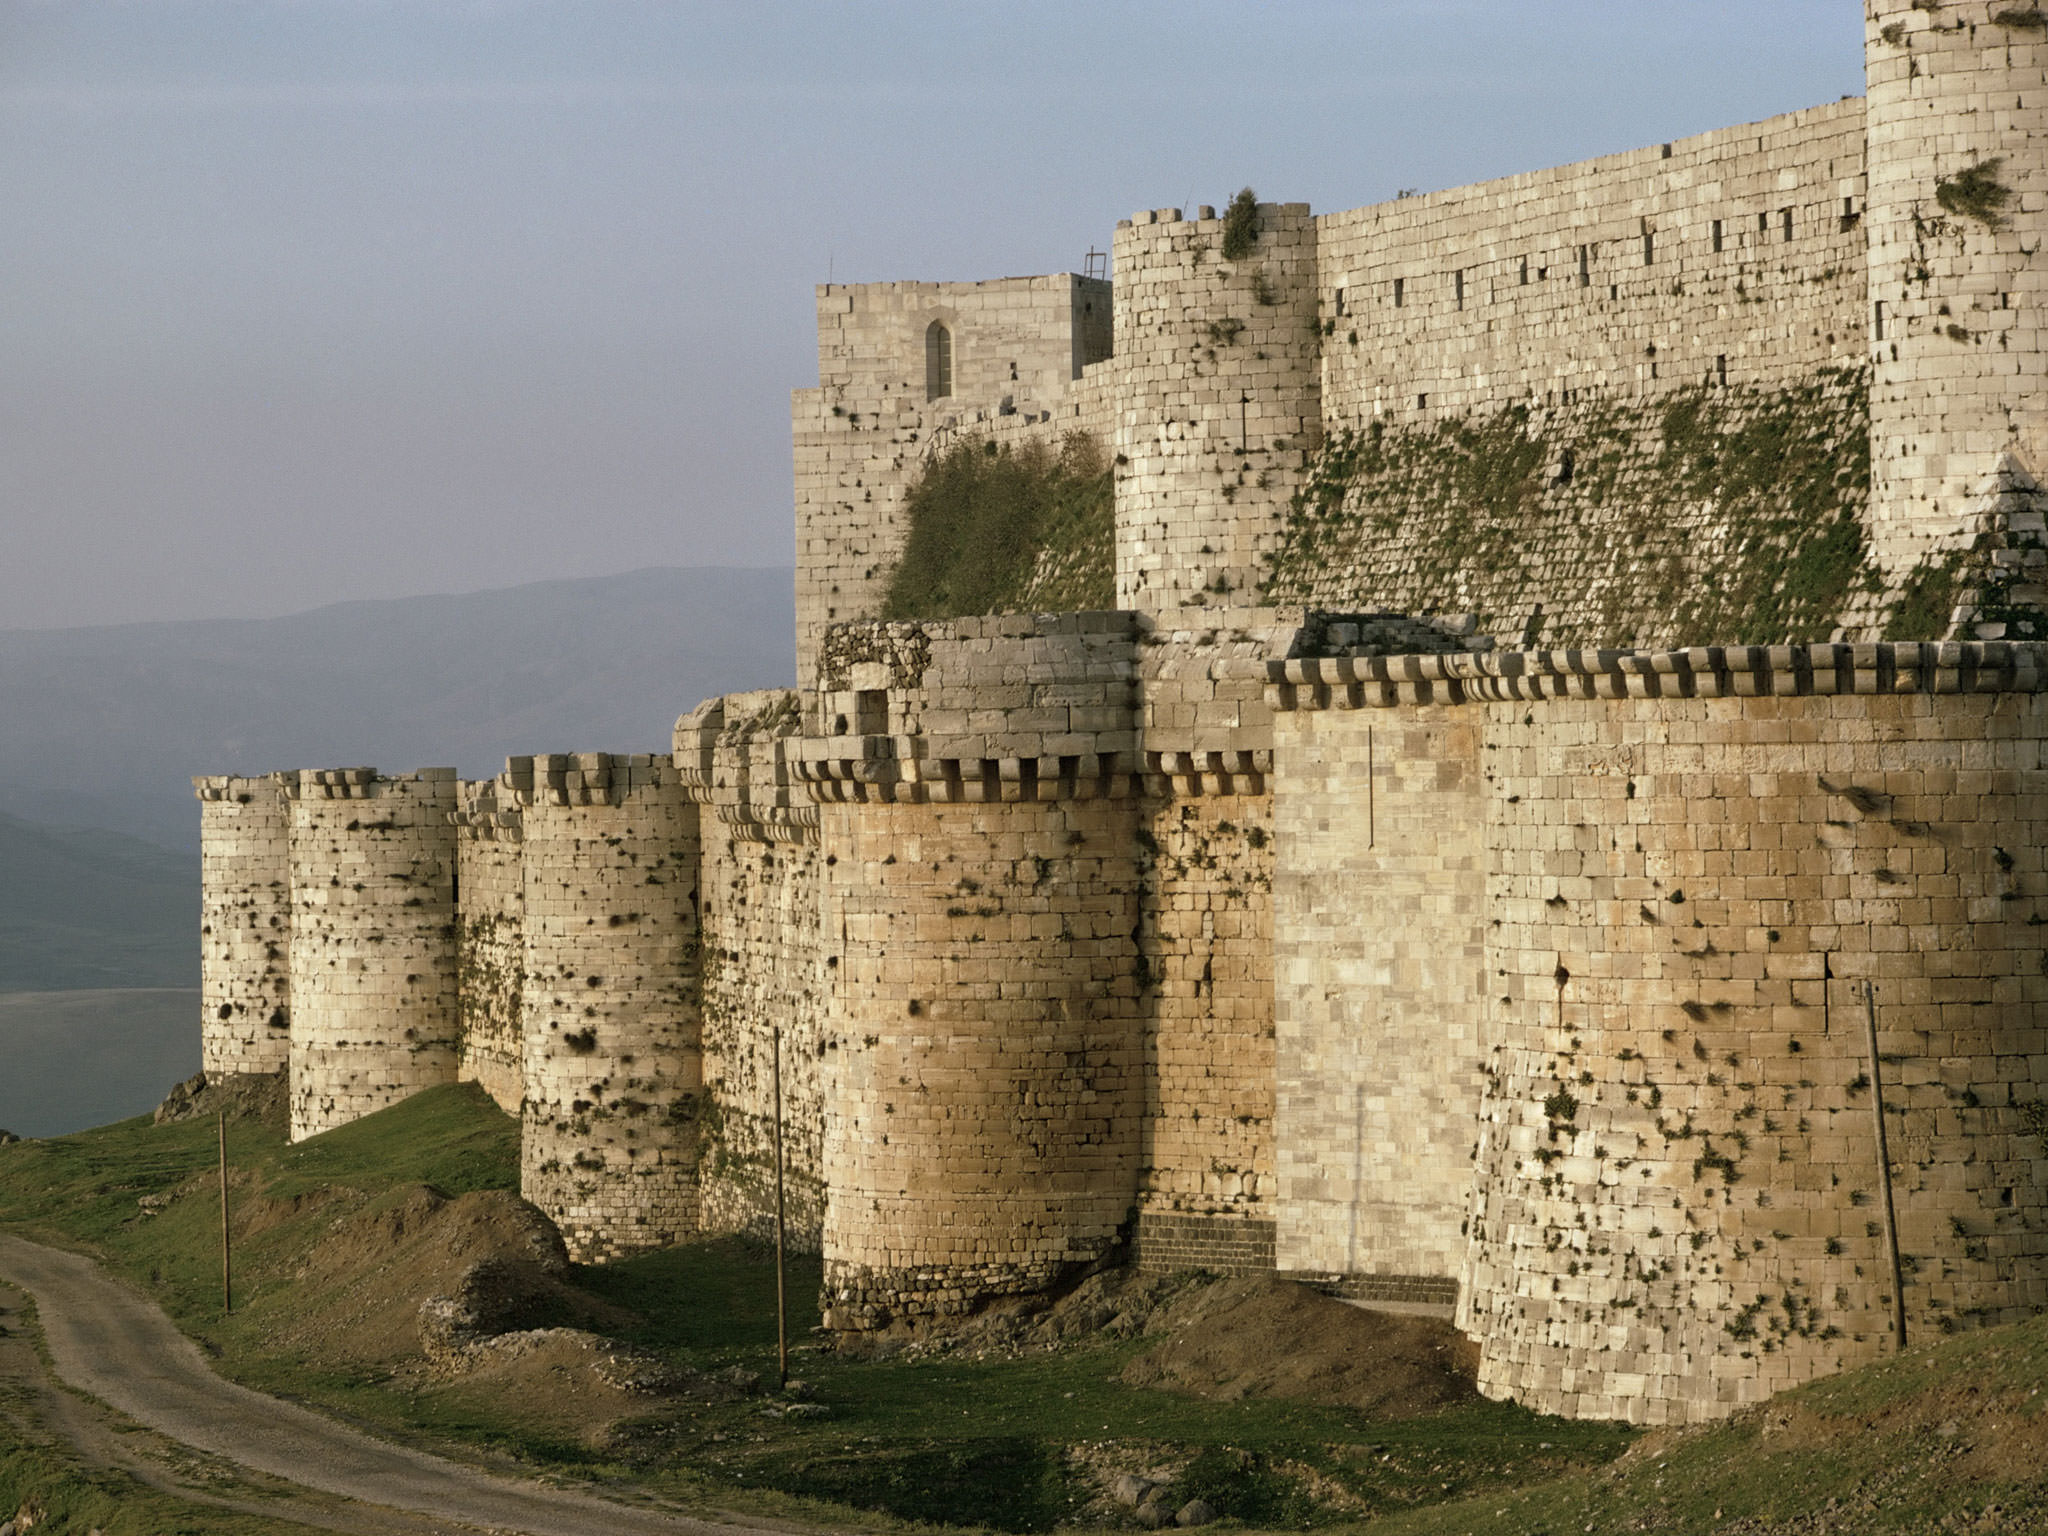 The Crusader castle the Krak des Chevaliers in Syria; Source: independent.co.uk